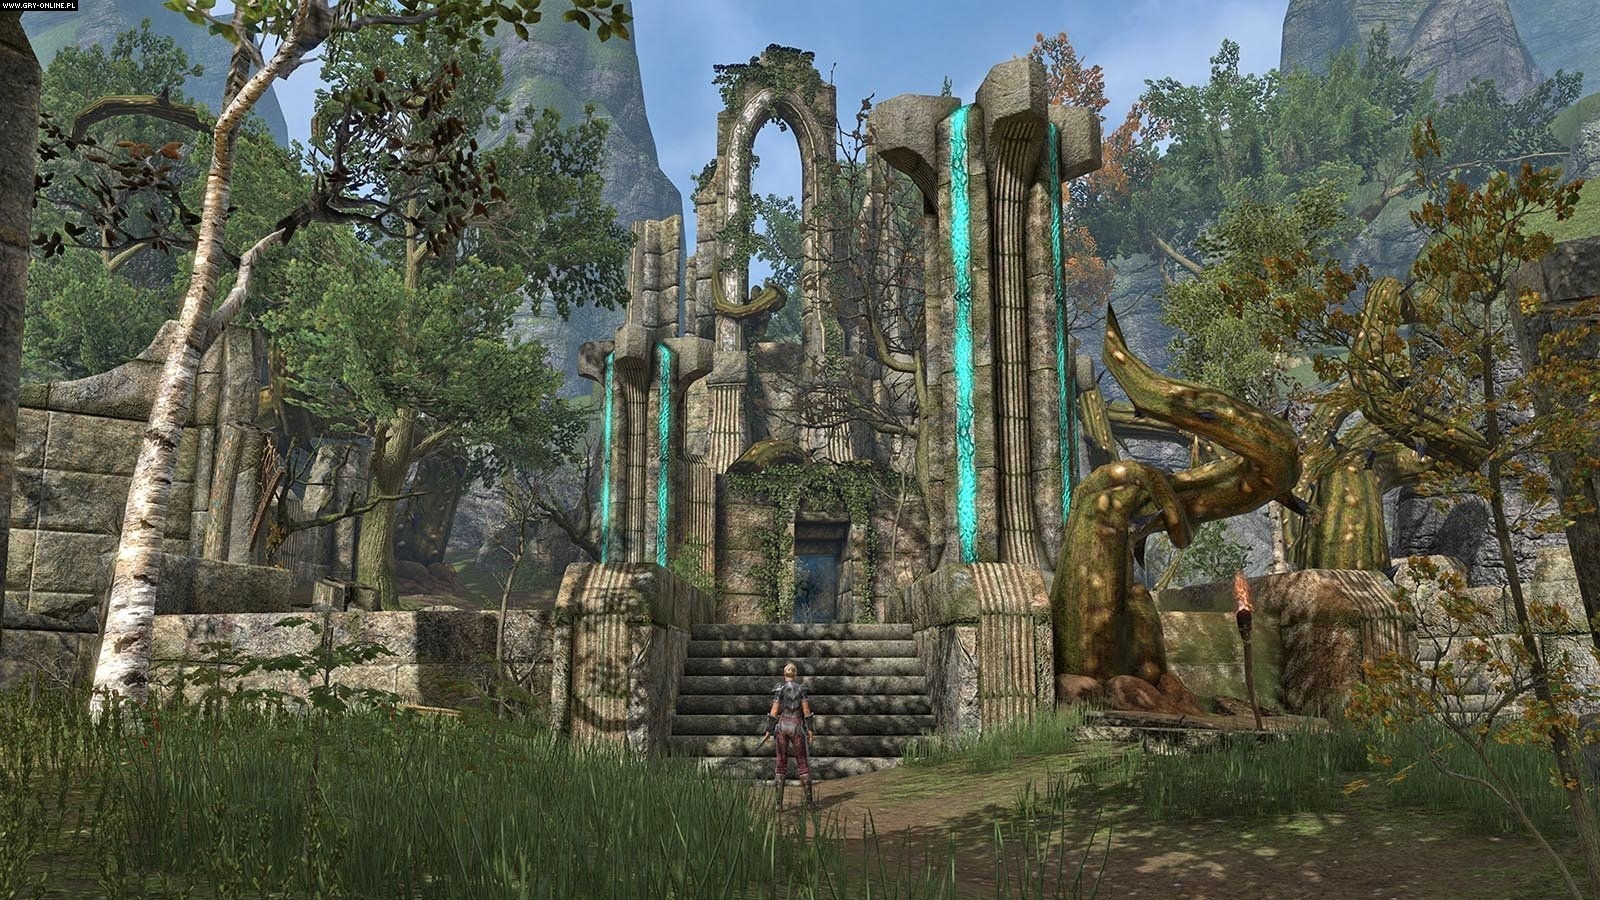 The Elder Scrolls Online: Tamriel Unlimited PC Gry Screen 59/104, ZeniMax Online Studios, Bethesda Softworks